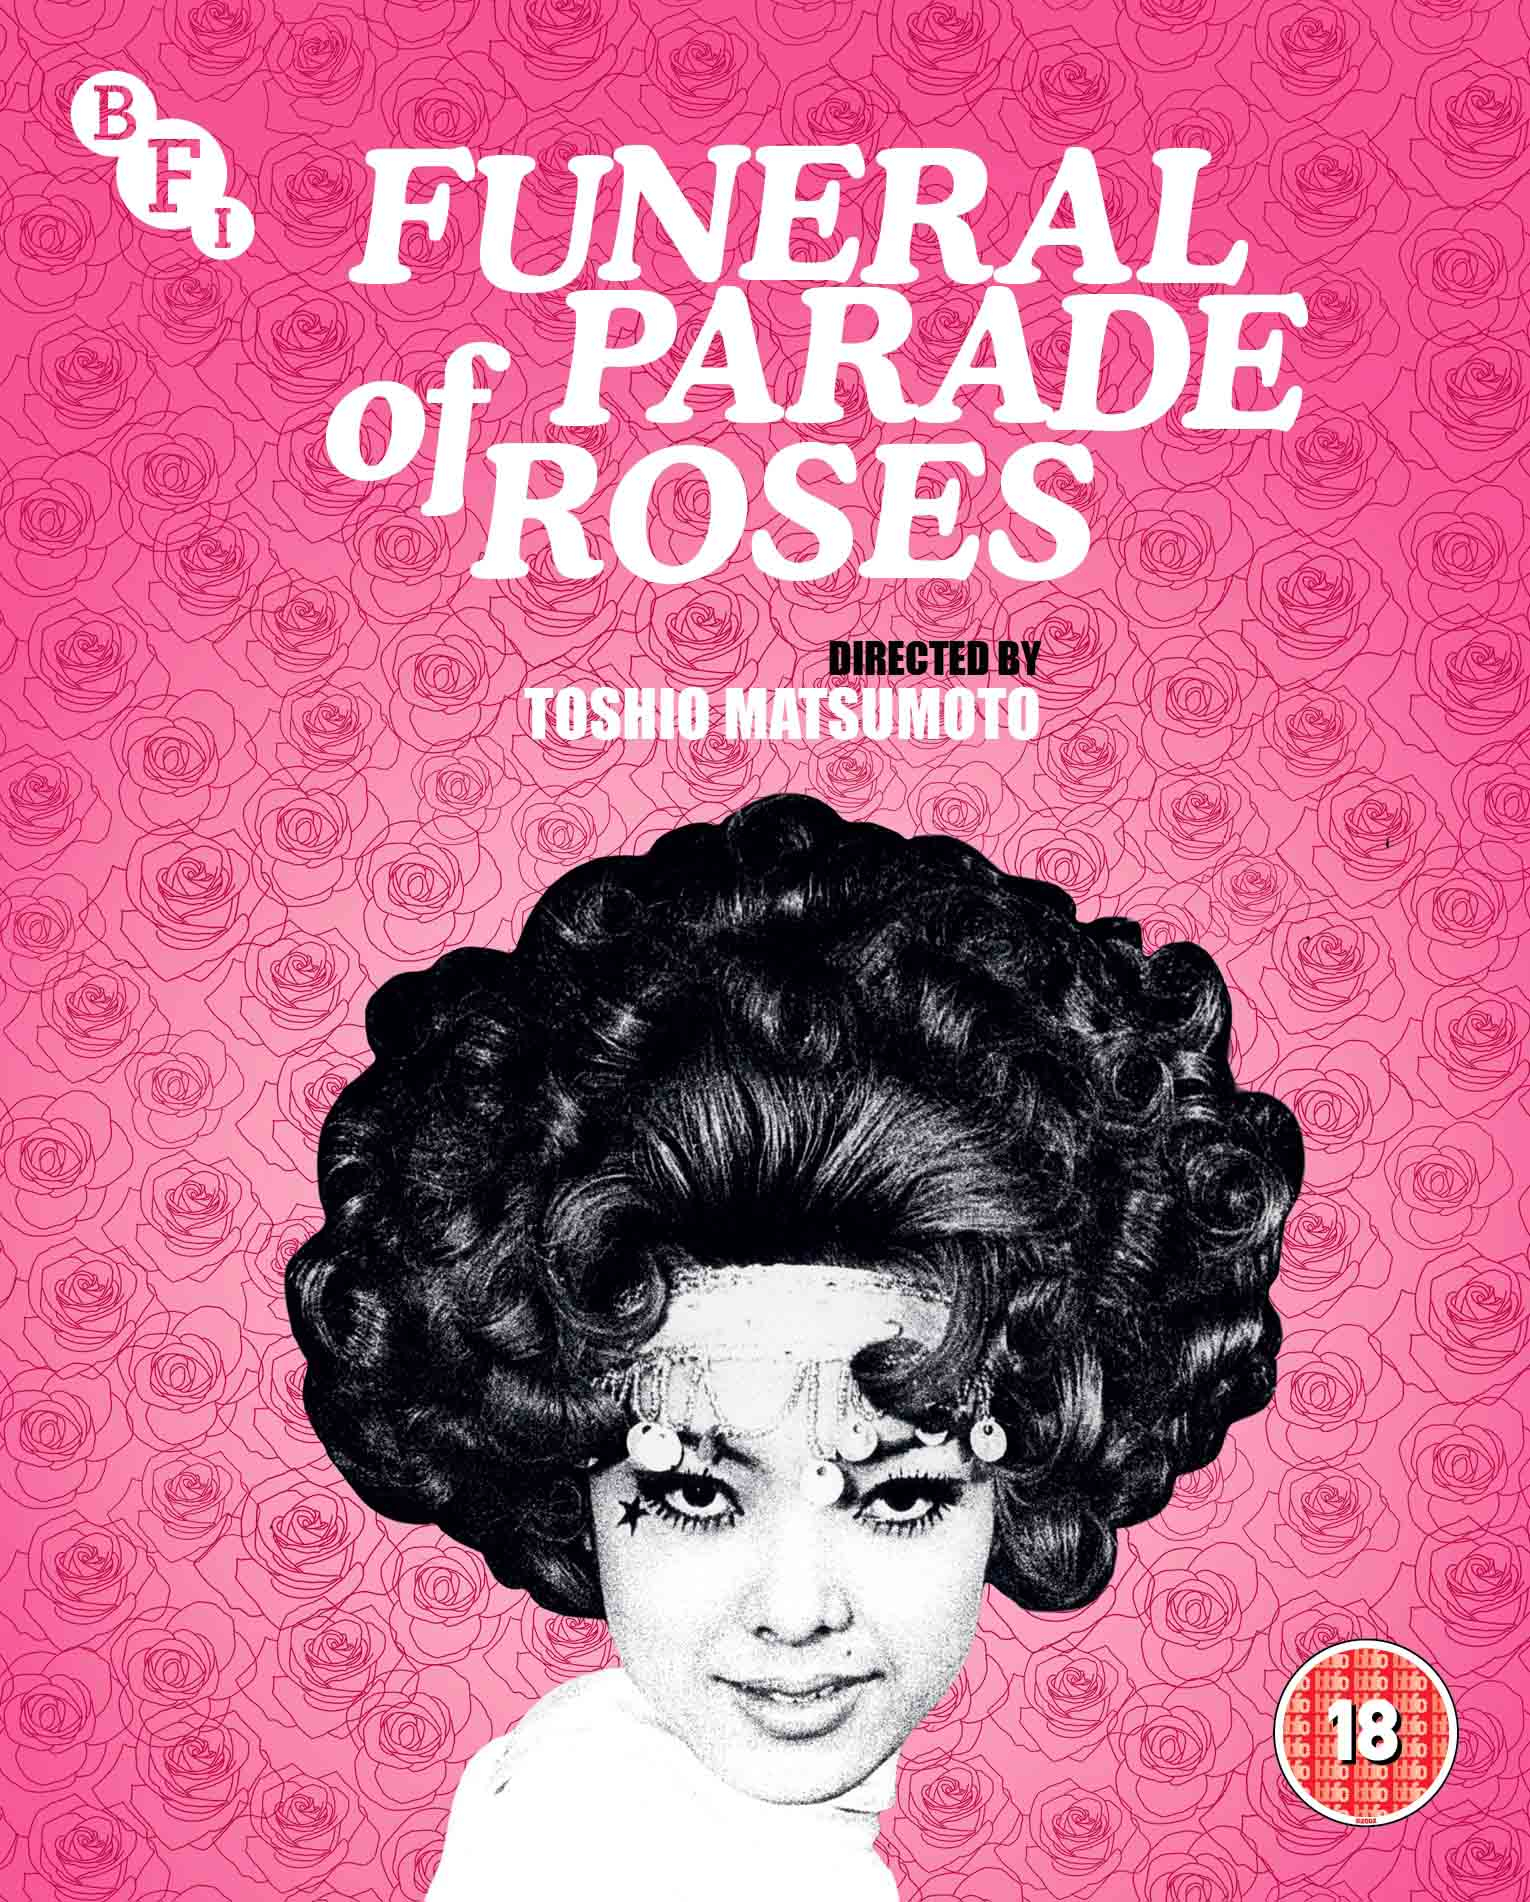 Buy PRE-ORDER Funeral Parade of Roses (Blu-ray)